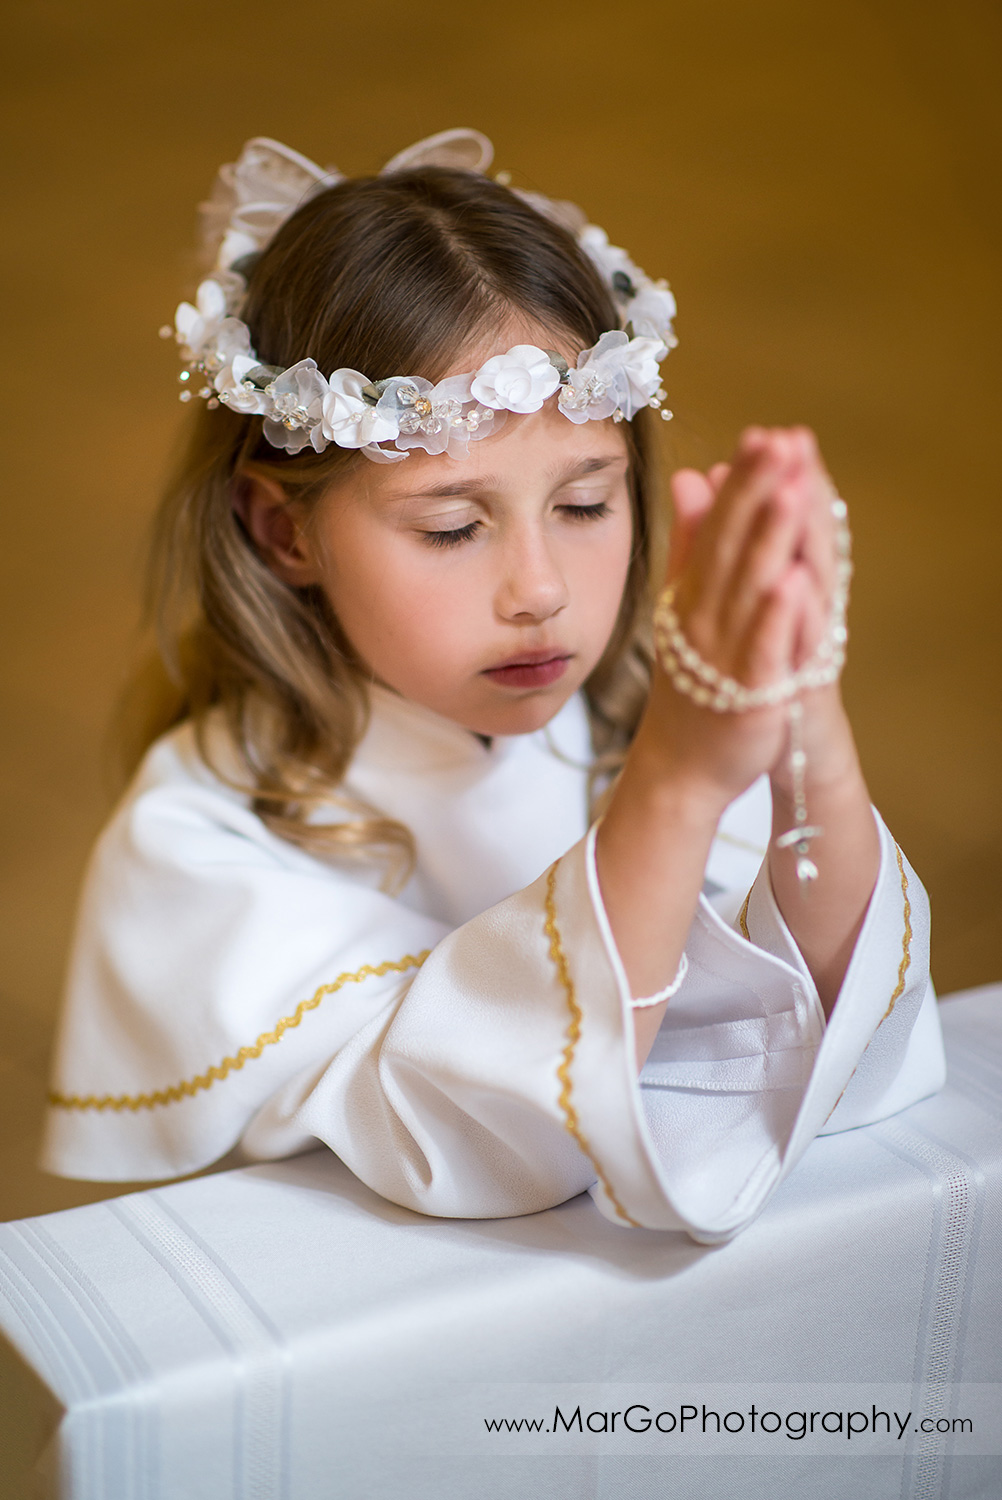 first communion girl in white alb holding rosary in folded hands in wooden San Jose church pews - focus on face